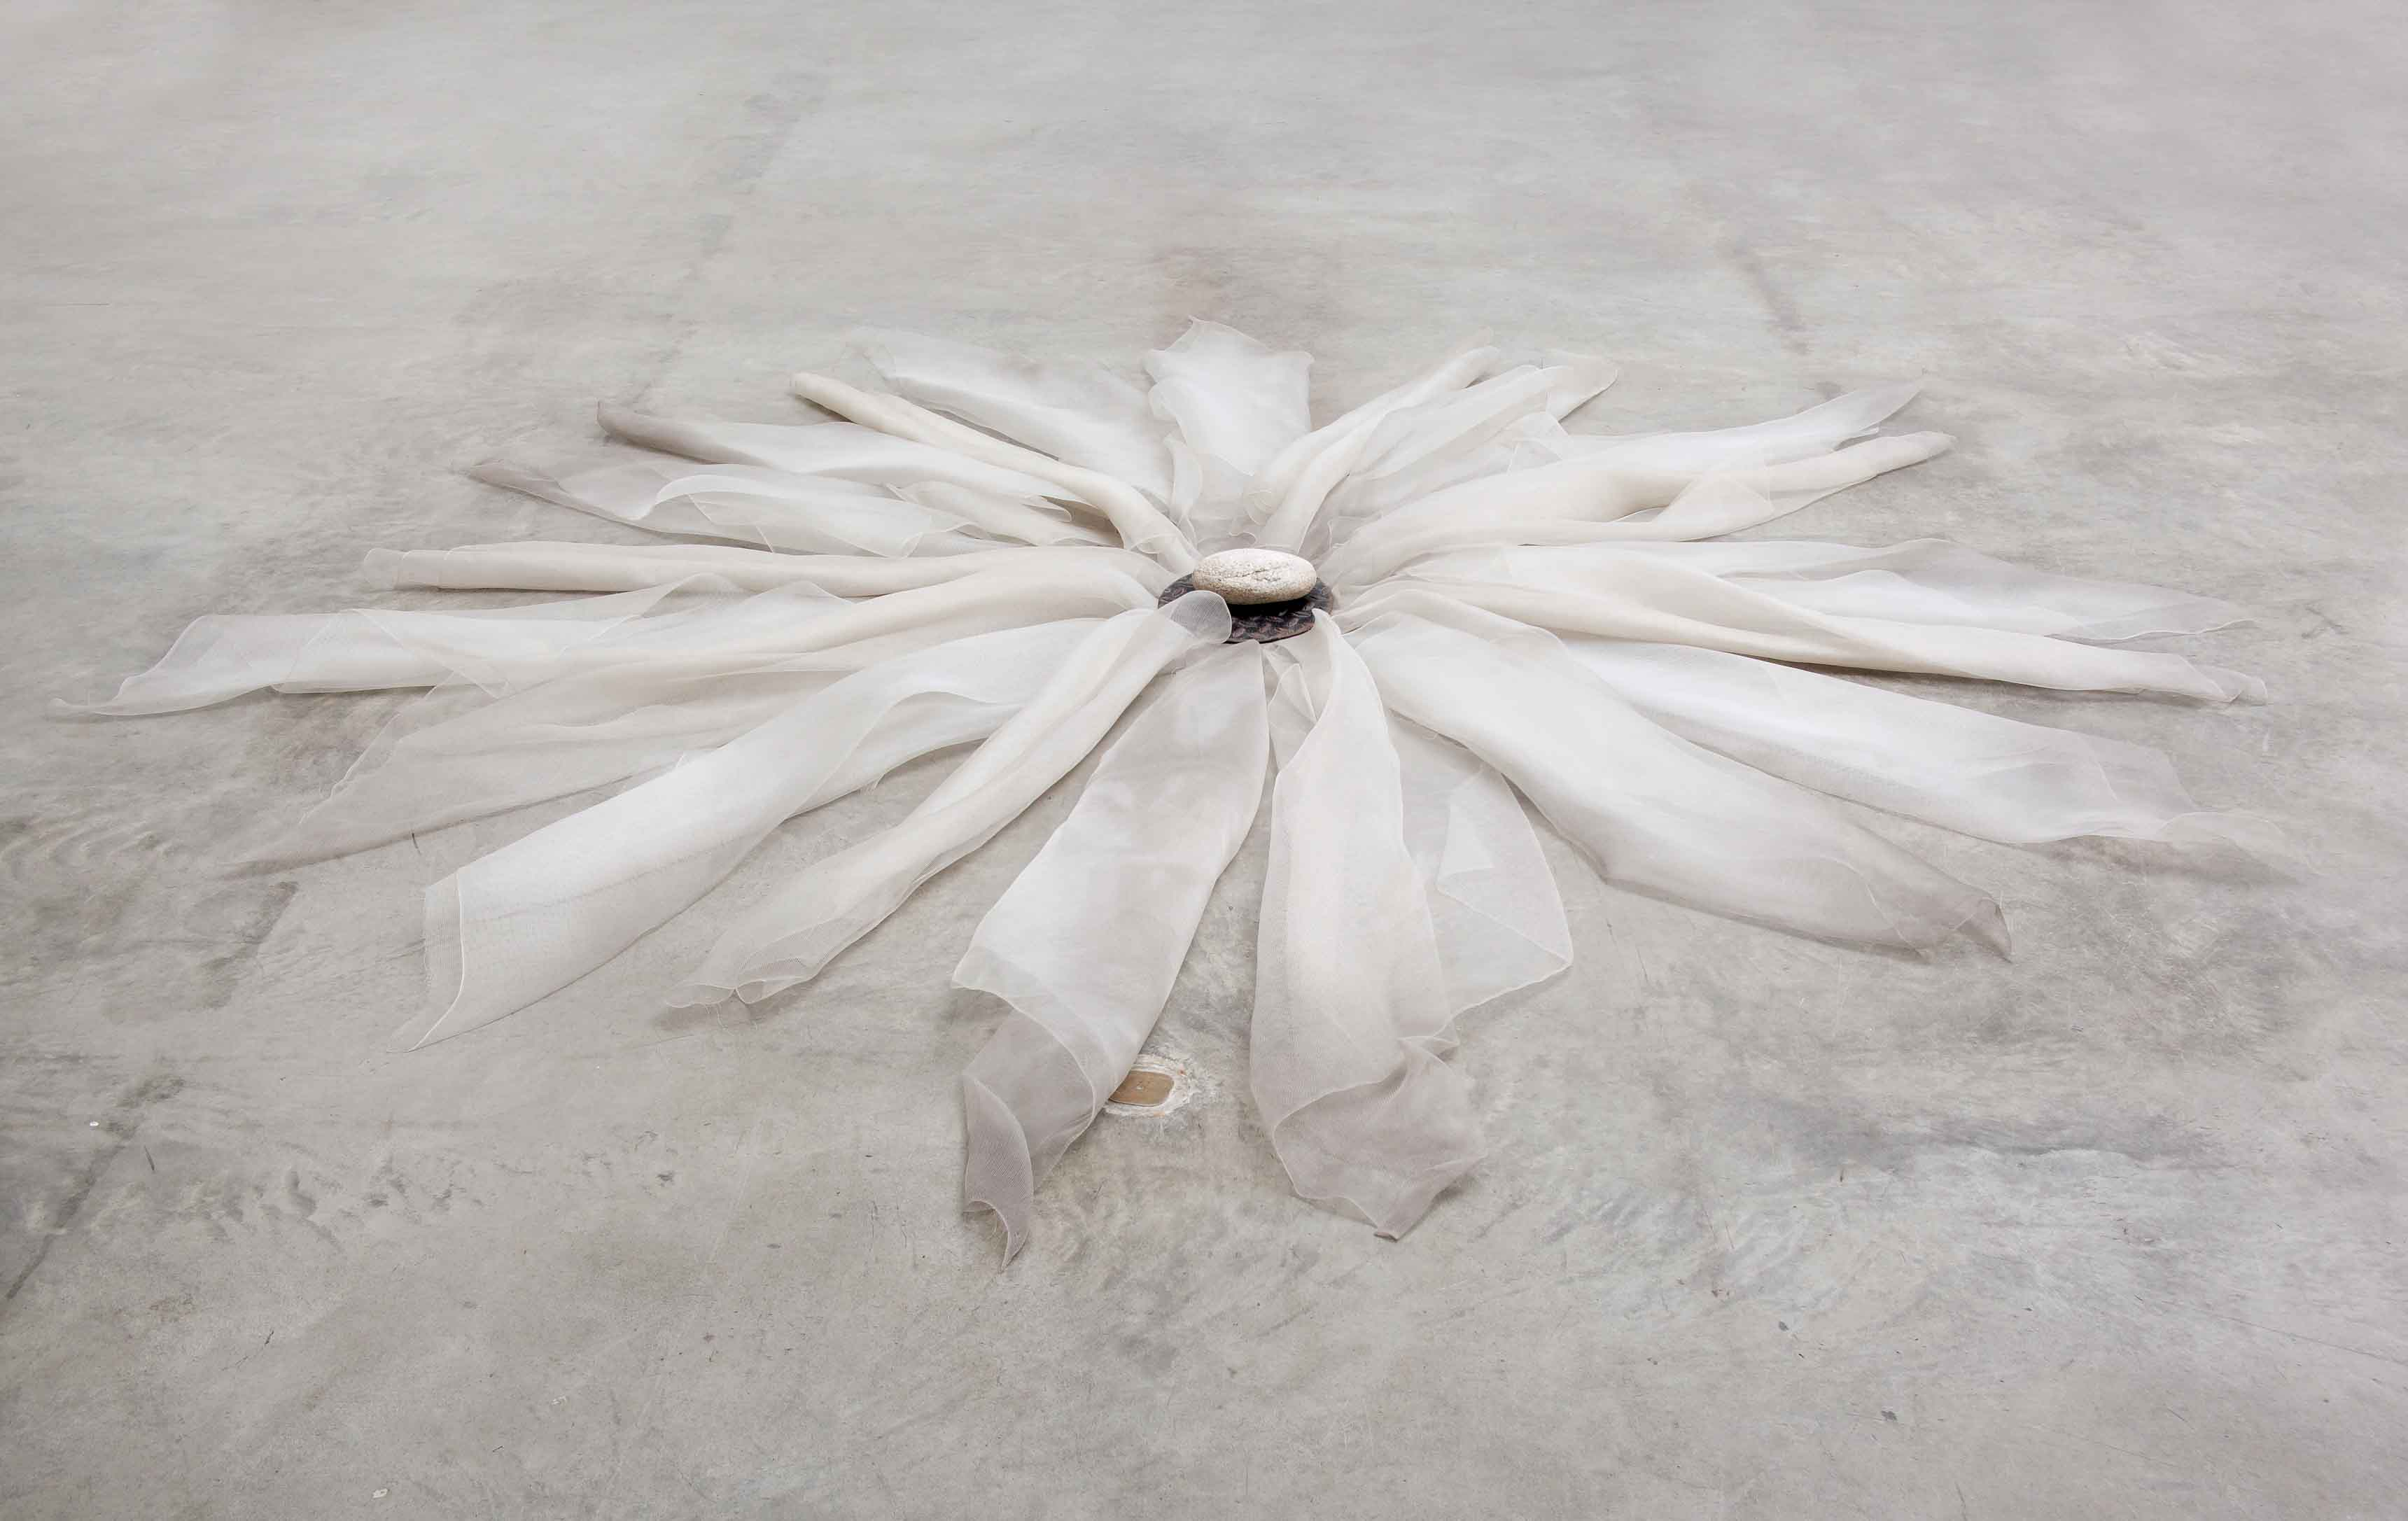 Untitled (1979), by Marisa Merz. Nylon fiber, iron and stone, 15 x 290 x 290 cm.